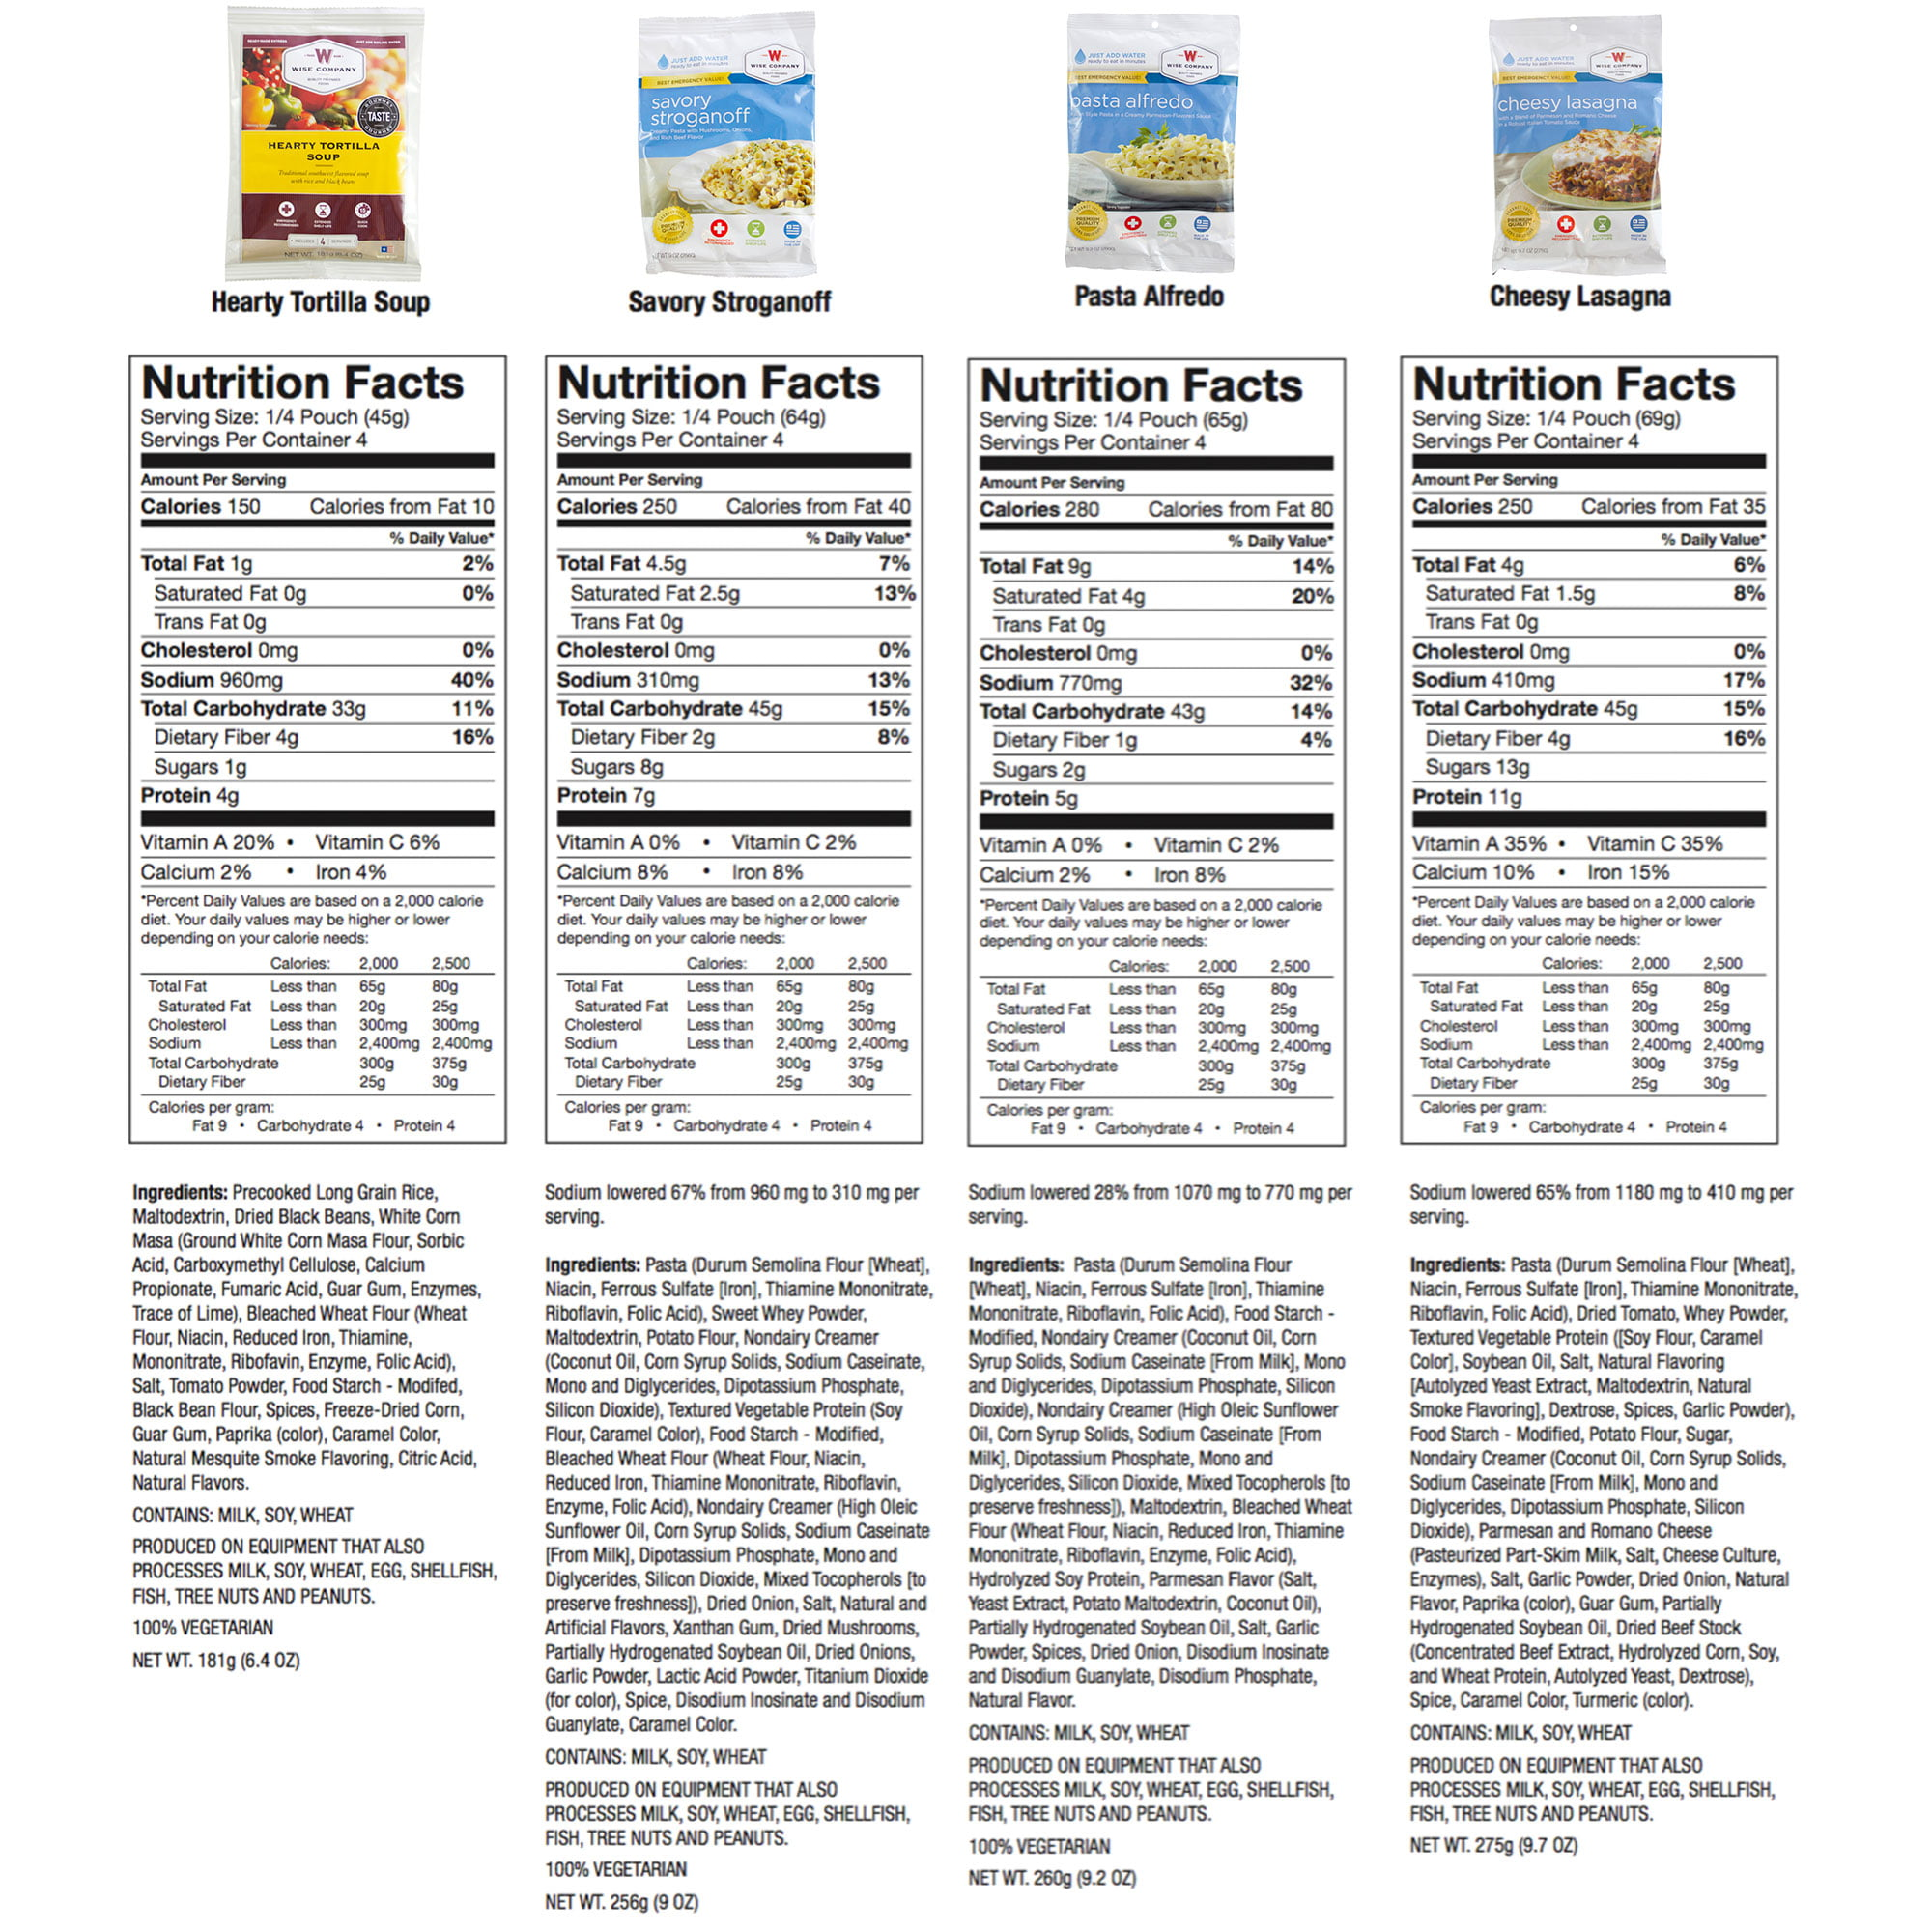 Wise Foods 2160 nutrition 3